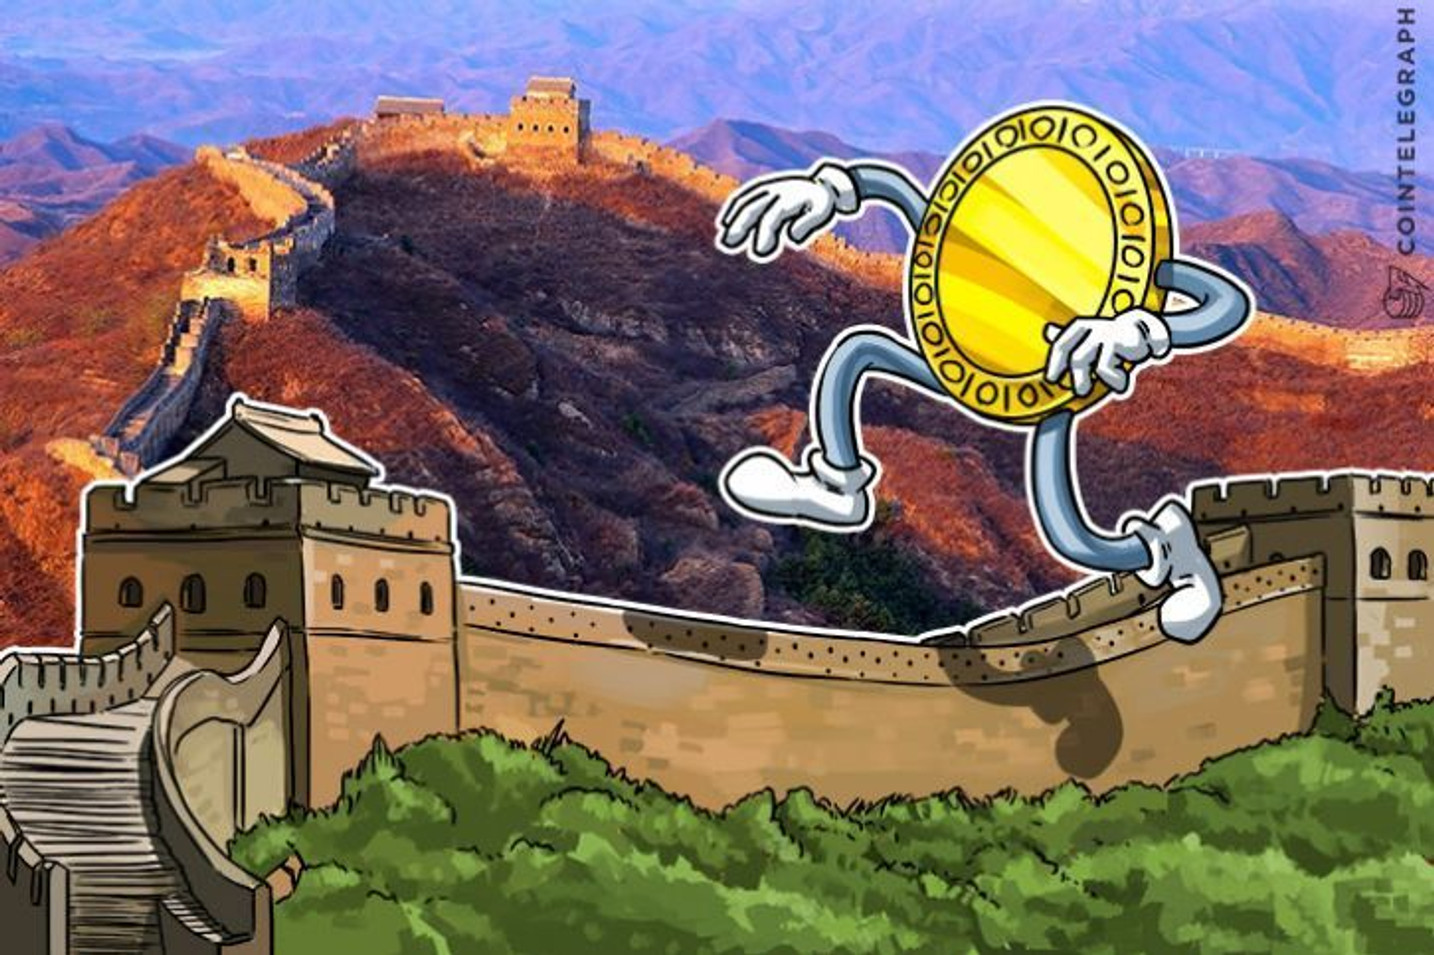 China Moves Towards Tougher Bitcoin Regulation, But Not to Outright Ban: Jihan Wu